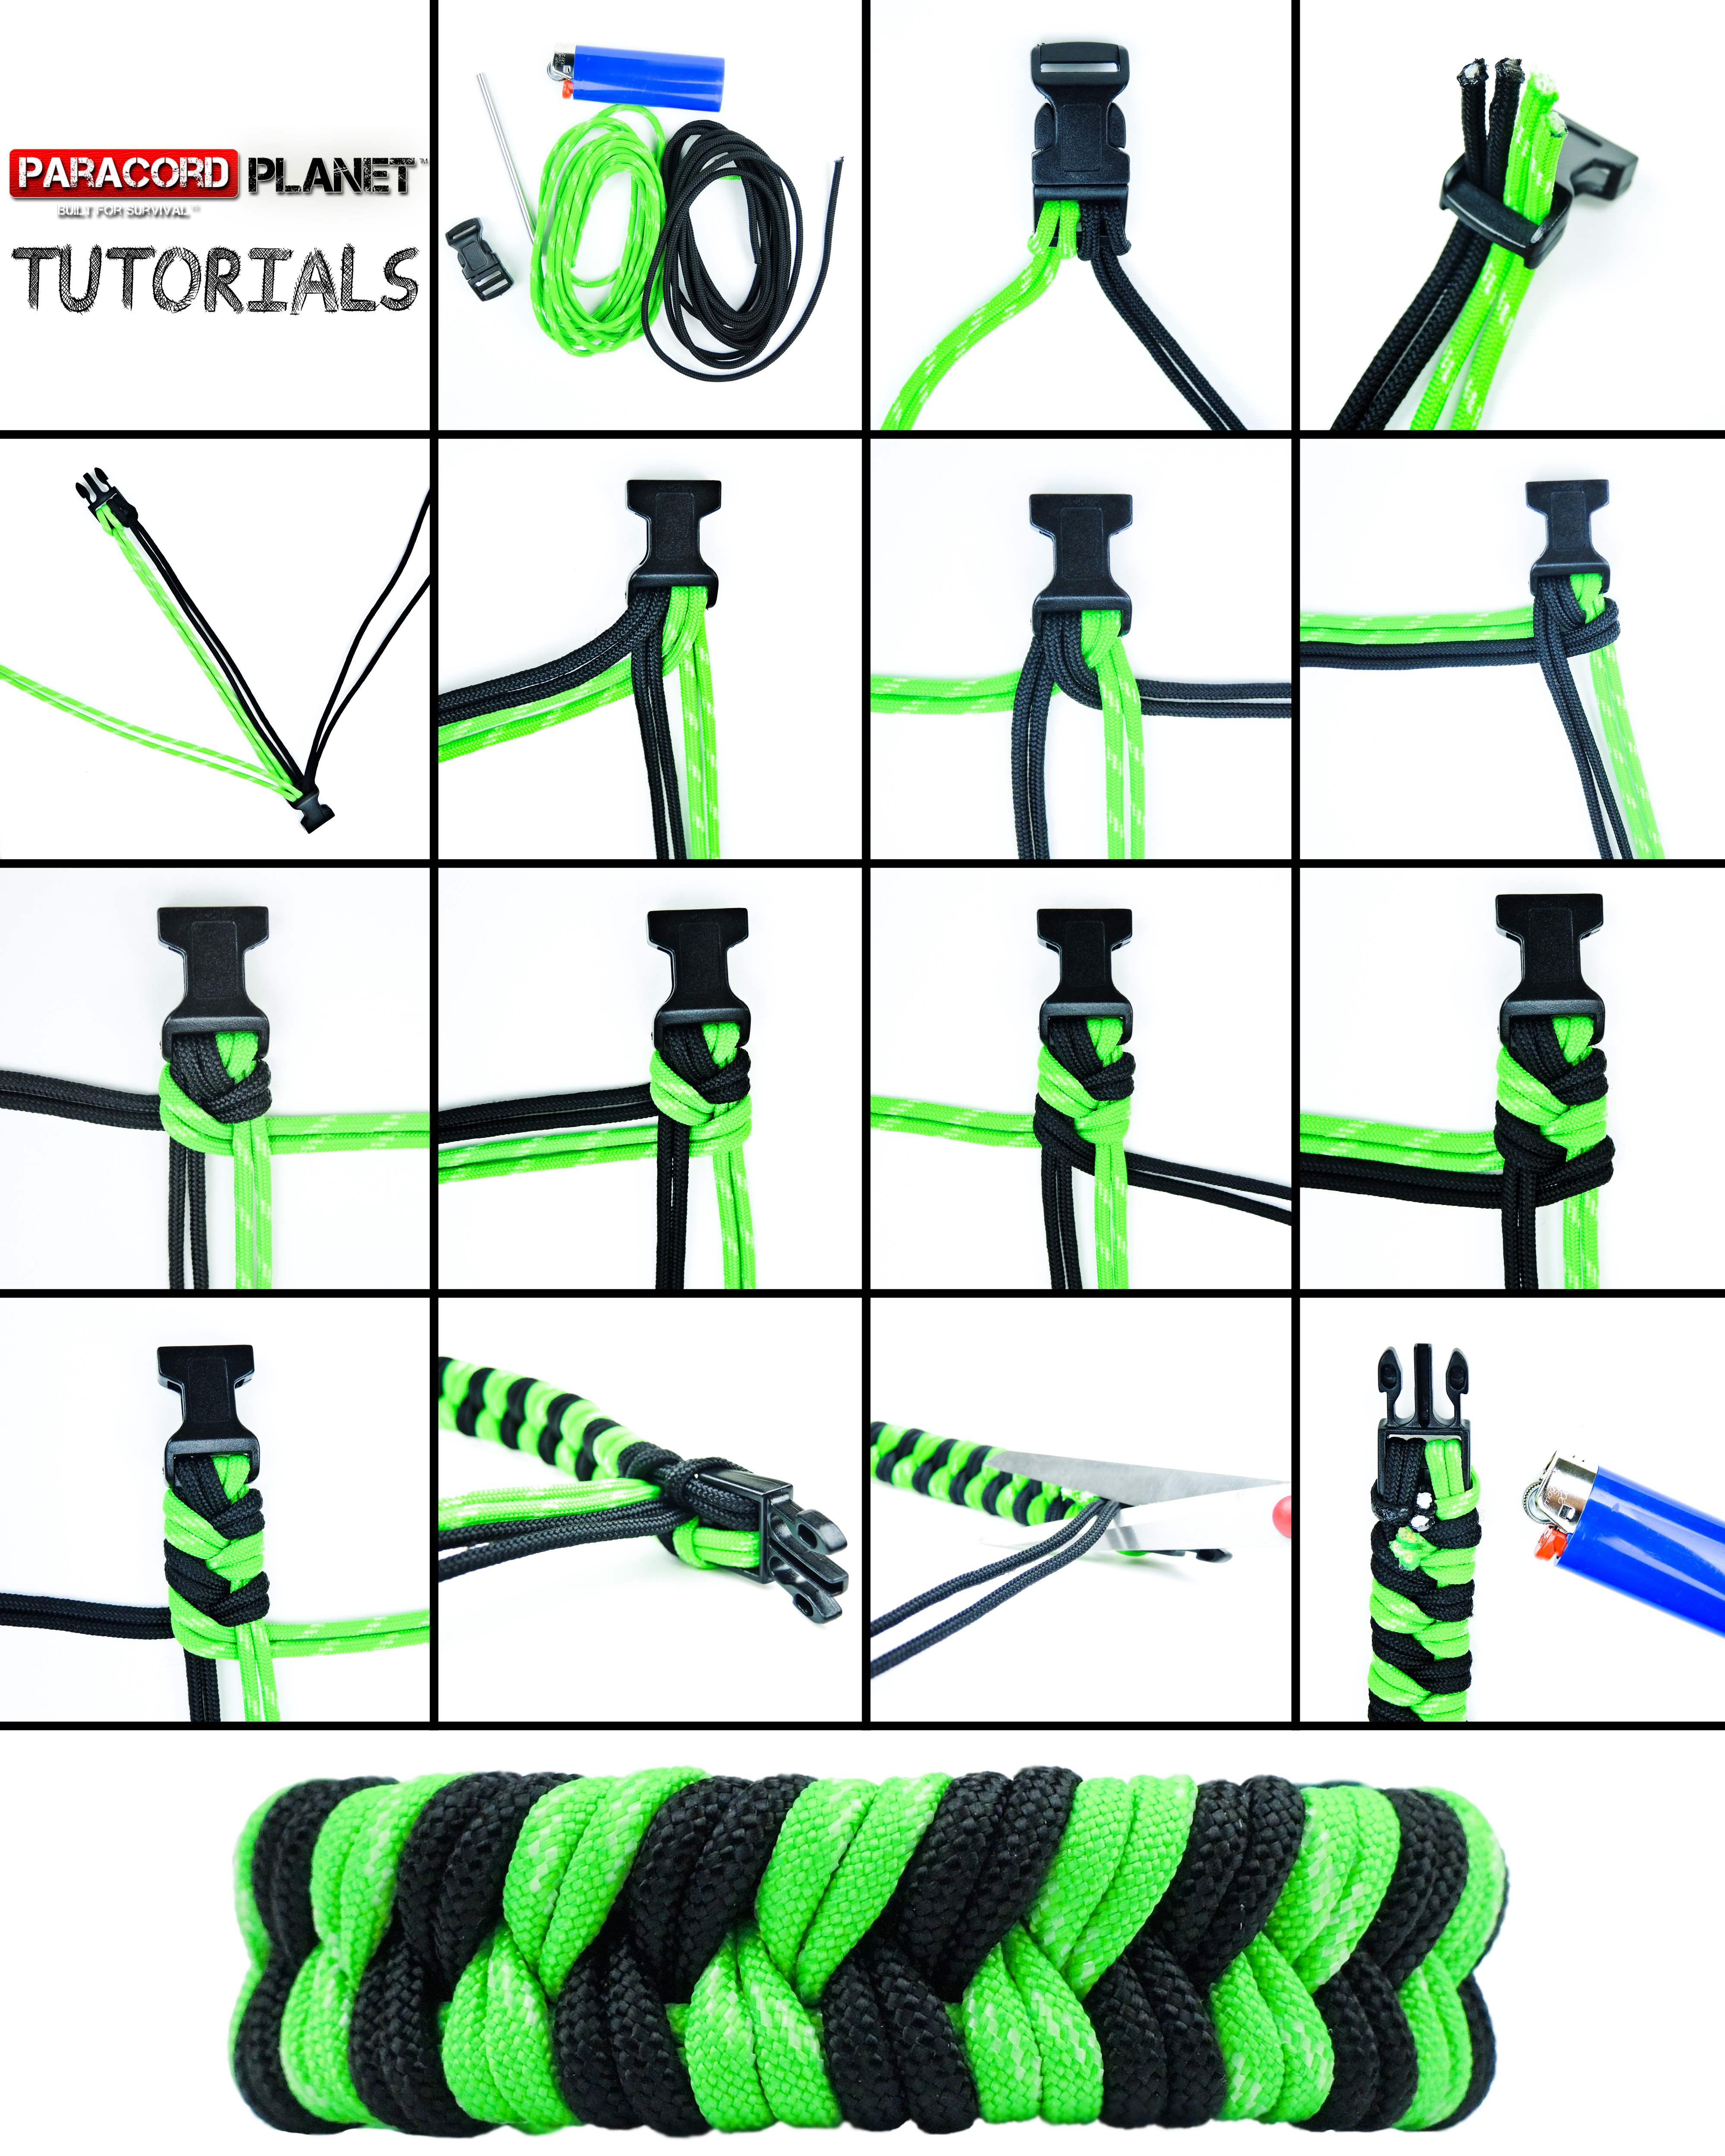 How to make a Double Fishtail paracord bracelet photo tutorial